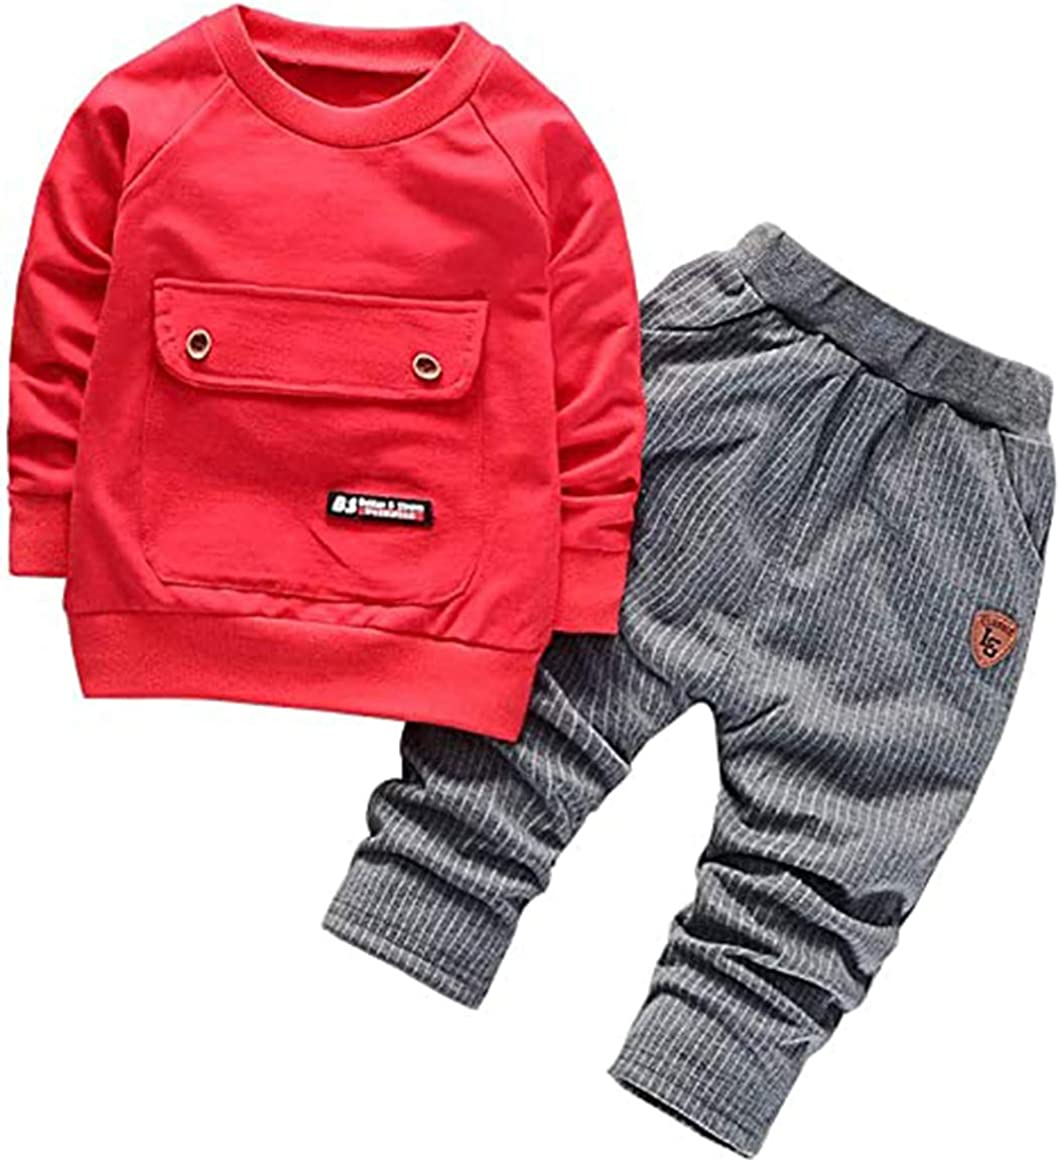 MetCuento Toddler Baby Boy Winter Clothes Long Sleeve Sweater T-Shirt Pants 2 Piece Outfits Set